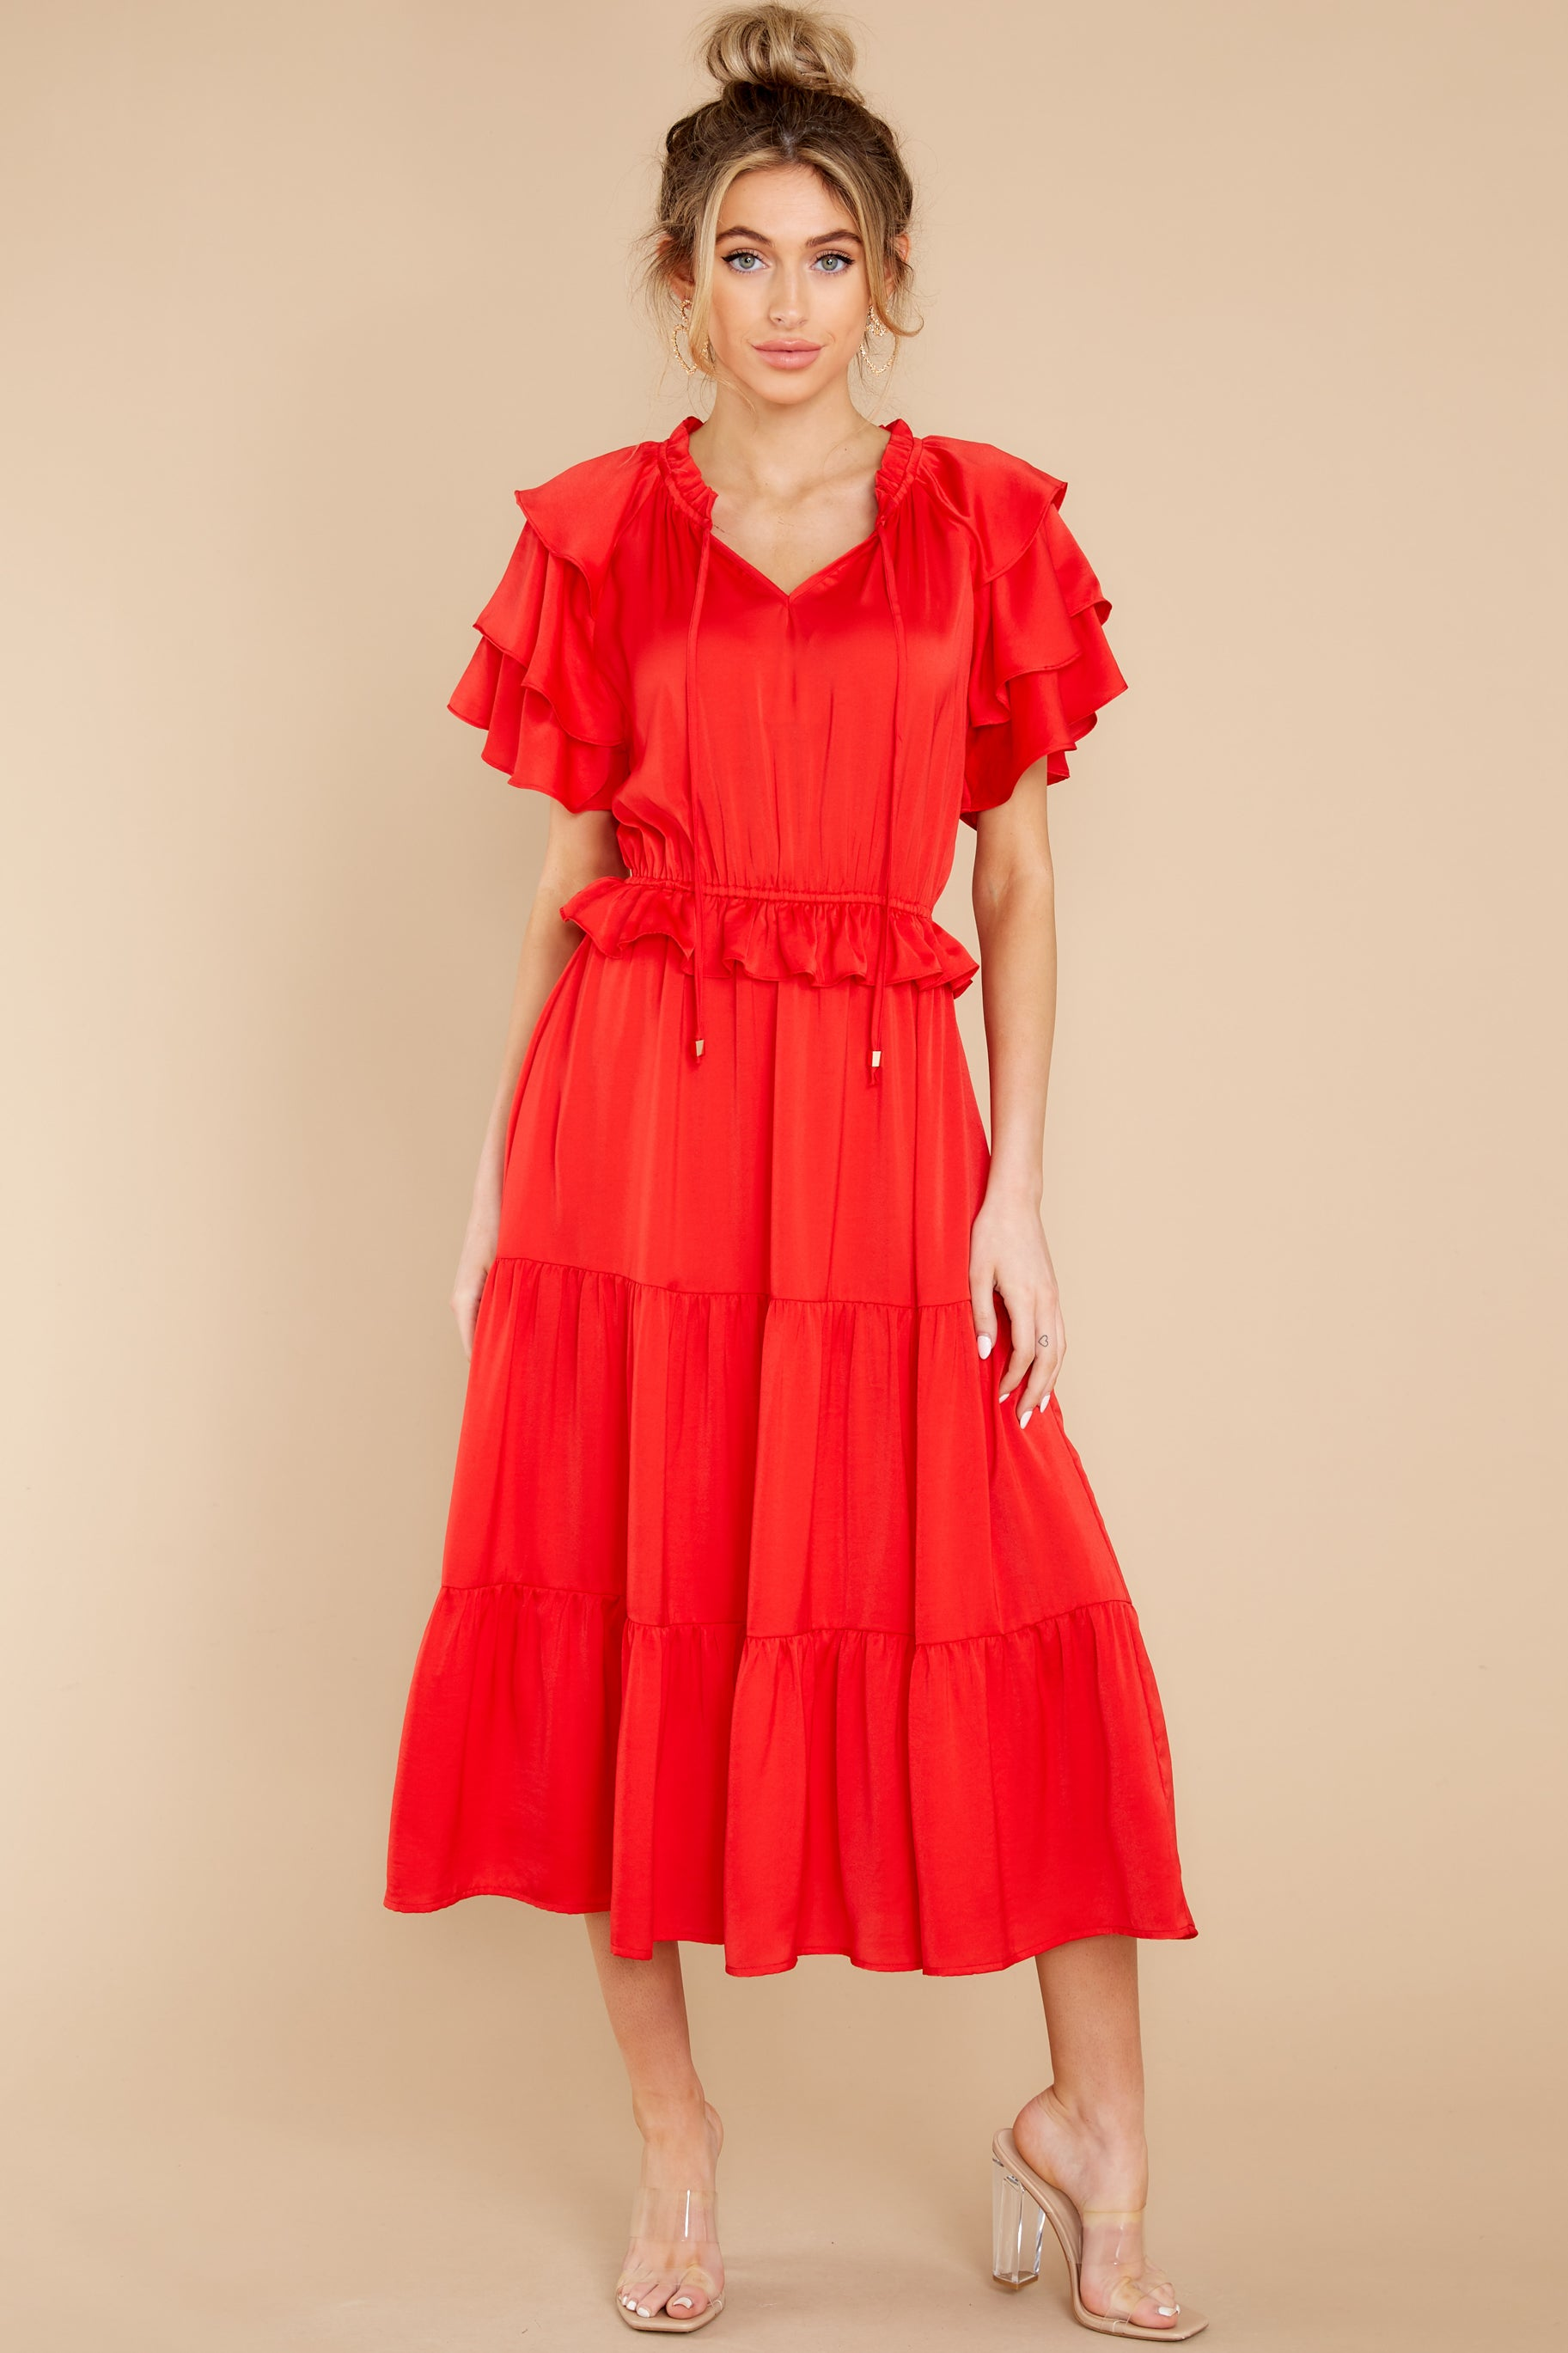 5 Frilled With You Red Midi Dress at reddress.com